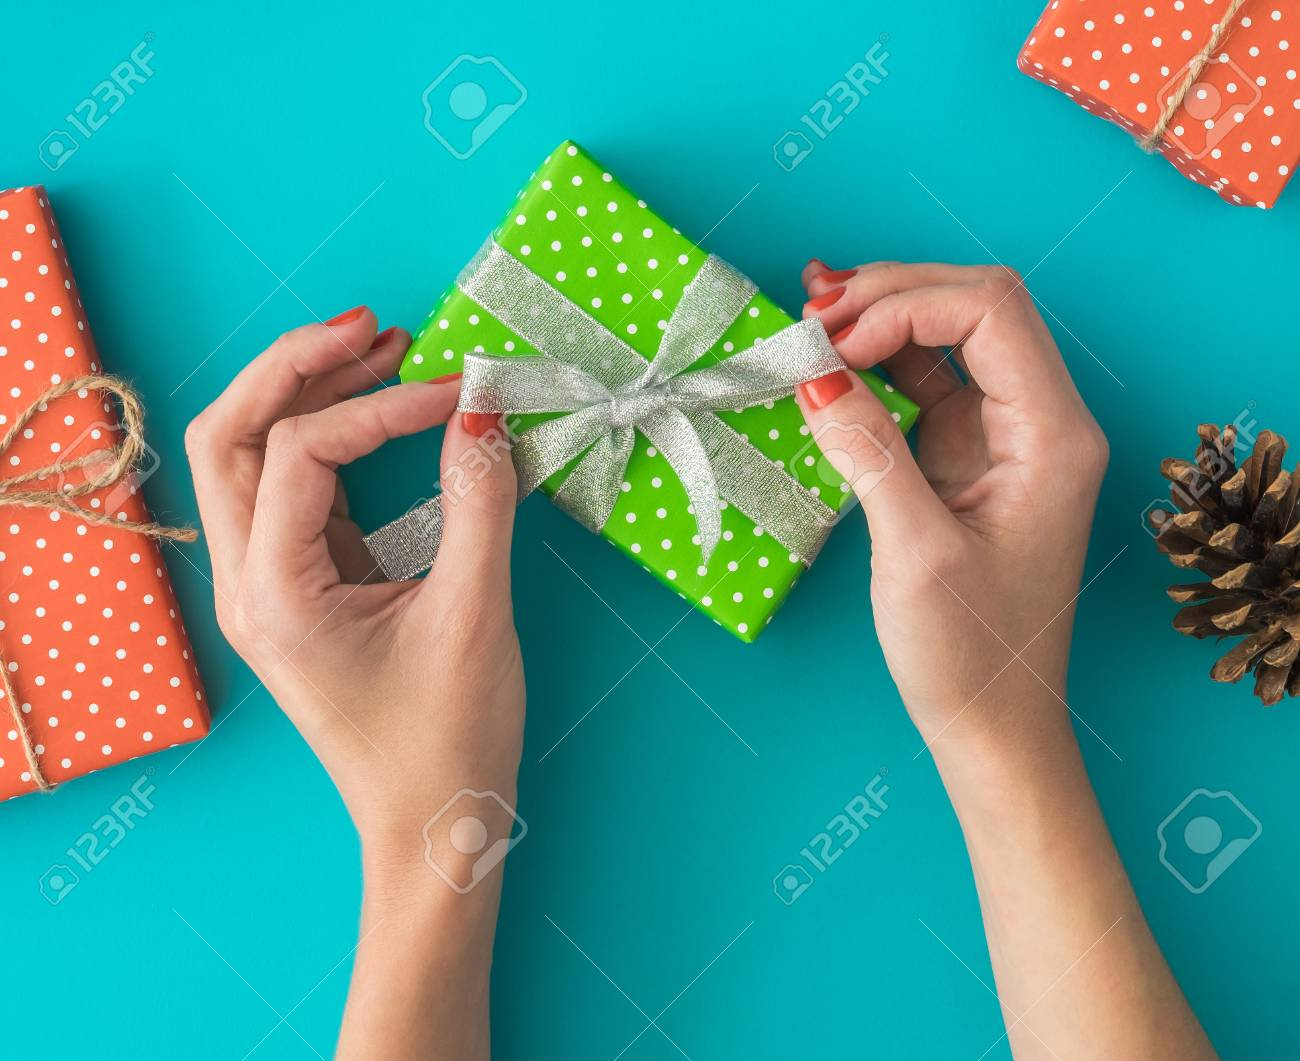 Christmas and New Year holiday composition with gift boxes, pine cone, womens hands pack a gift on the blue background. Top view, flat lay. Copyspace. Stock Photo - 90026707